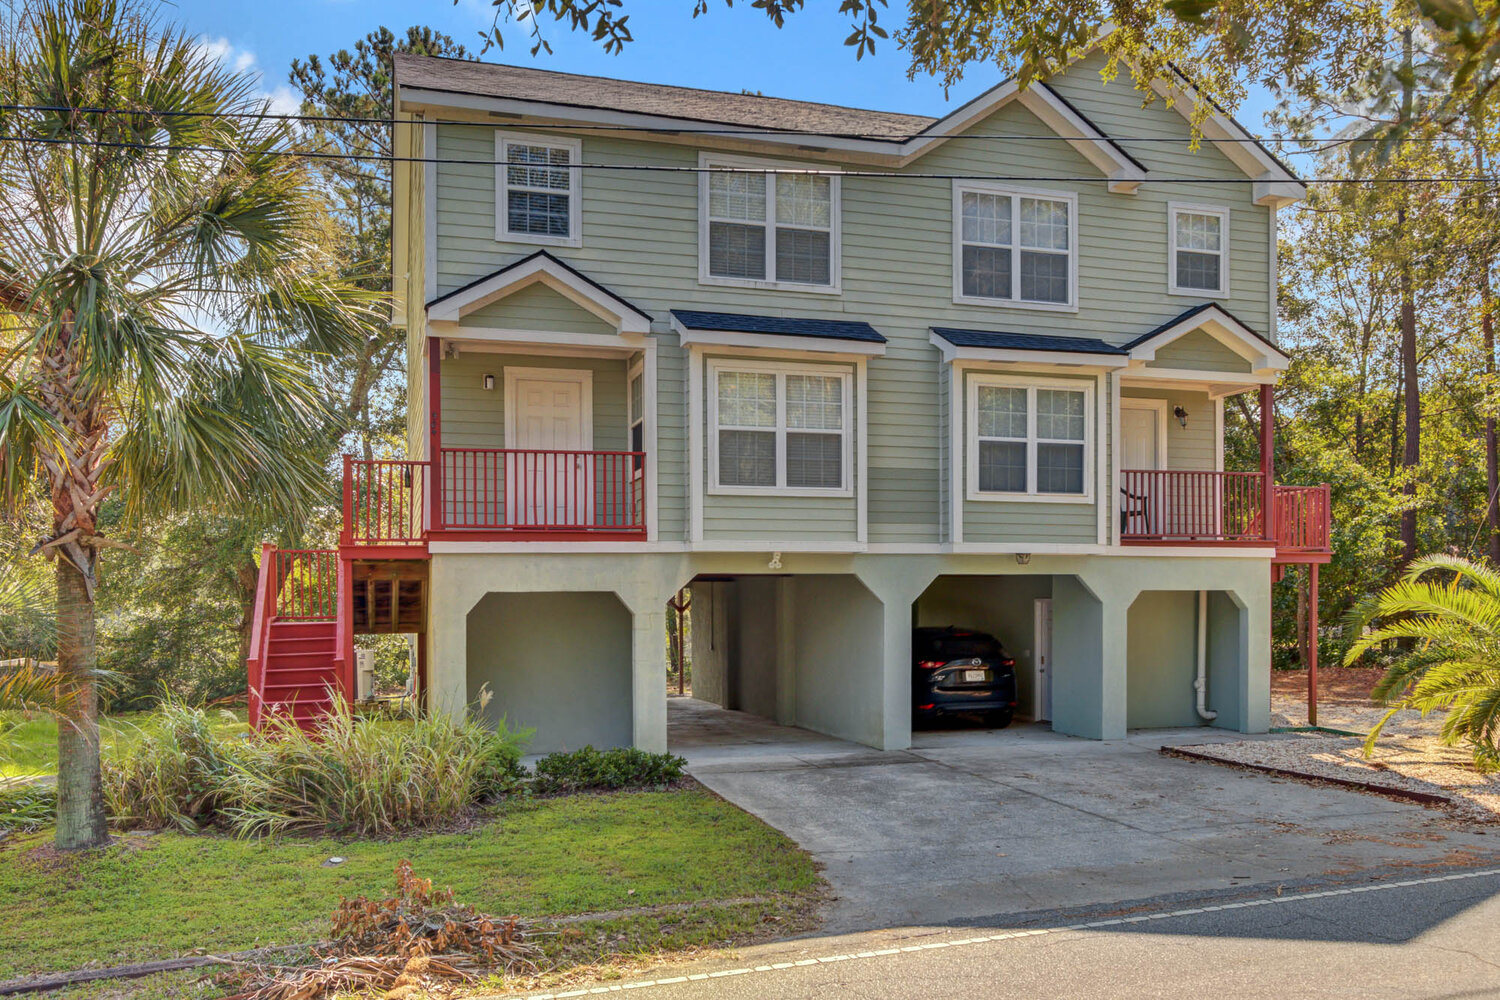 504 P - 3 Bedrooms - Sleeps 6AVAILABLE ON A MONTHLY BASIS: 12/23